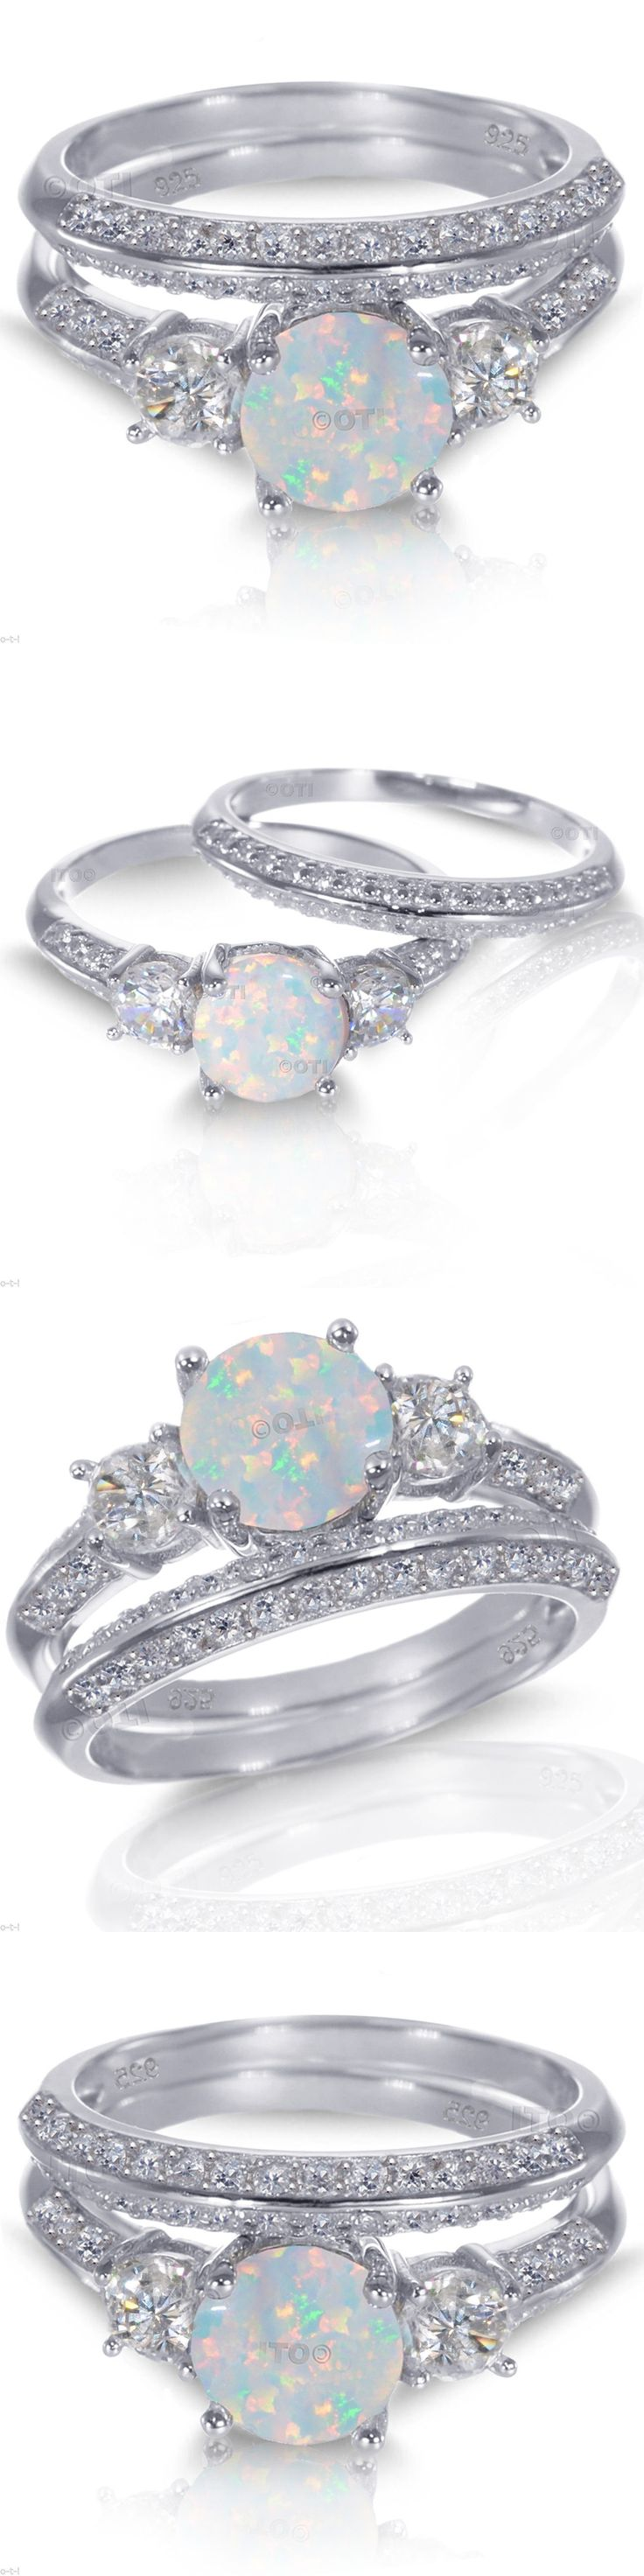 Rings 67681: White Gold Sterling Silver Round Cut White Fire Opal Wedding  Engagement Ring Set